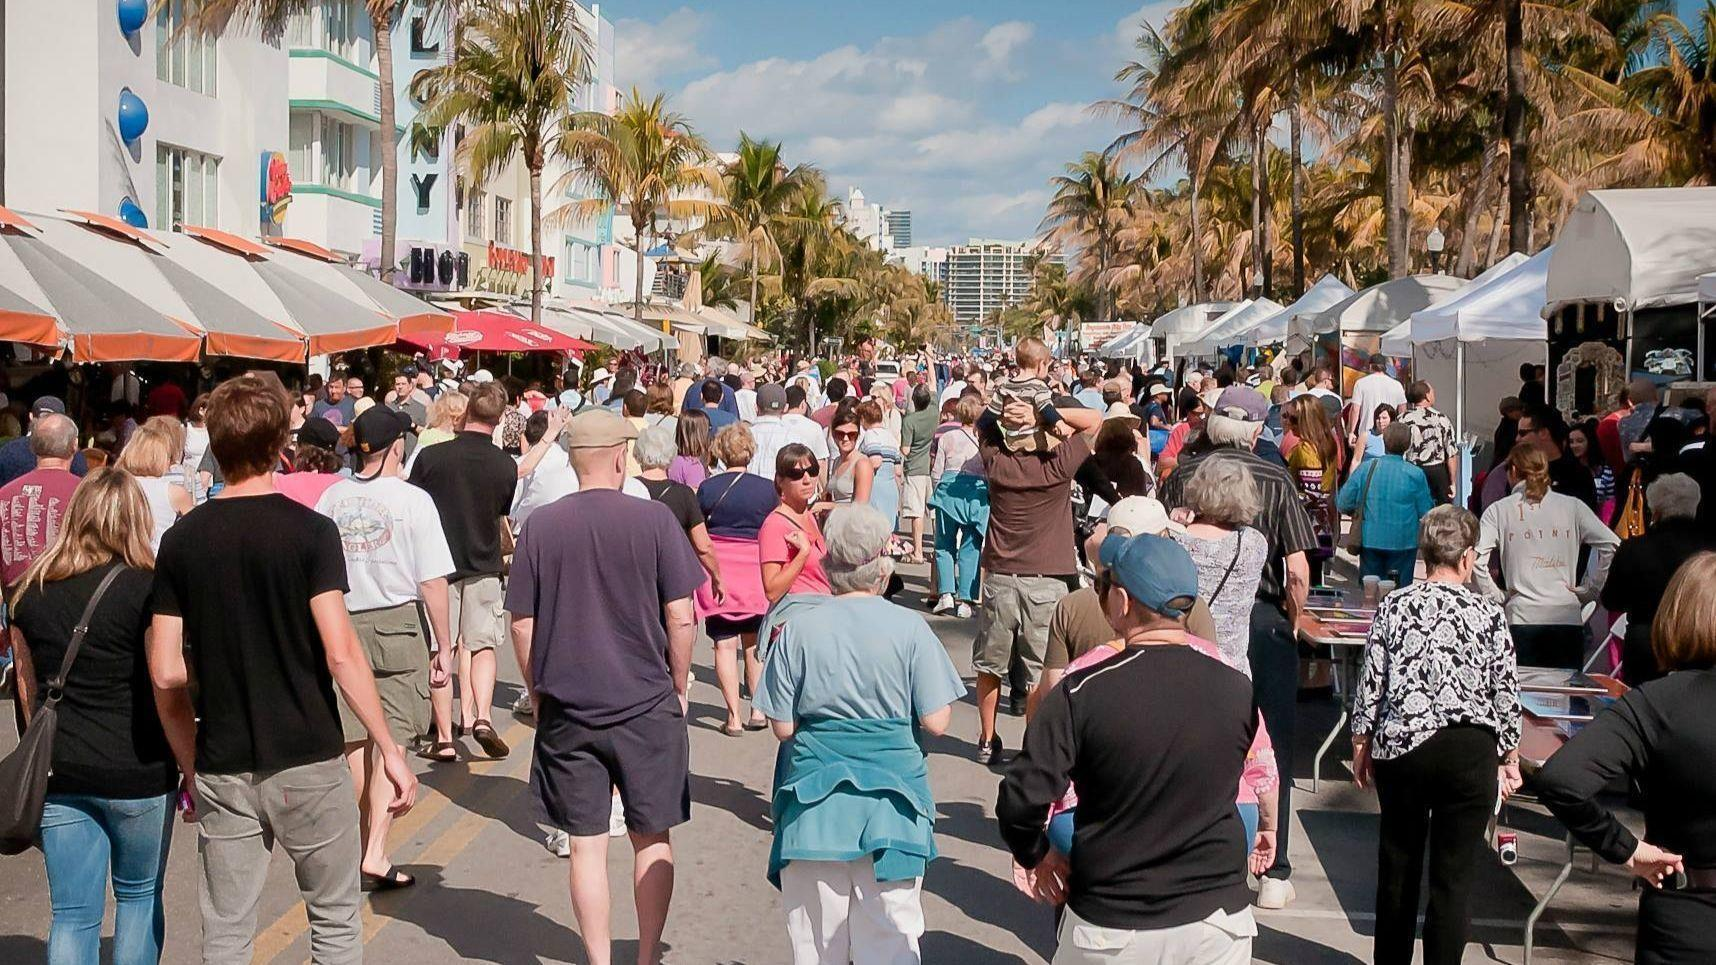 Three festivals to catch this weekend: Art Deco Weekend, Delray Beach Festival of the Arts, Sistrunk-a-Fair